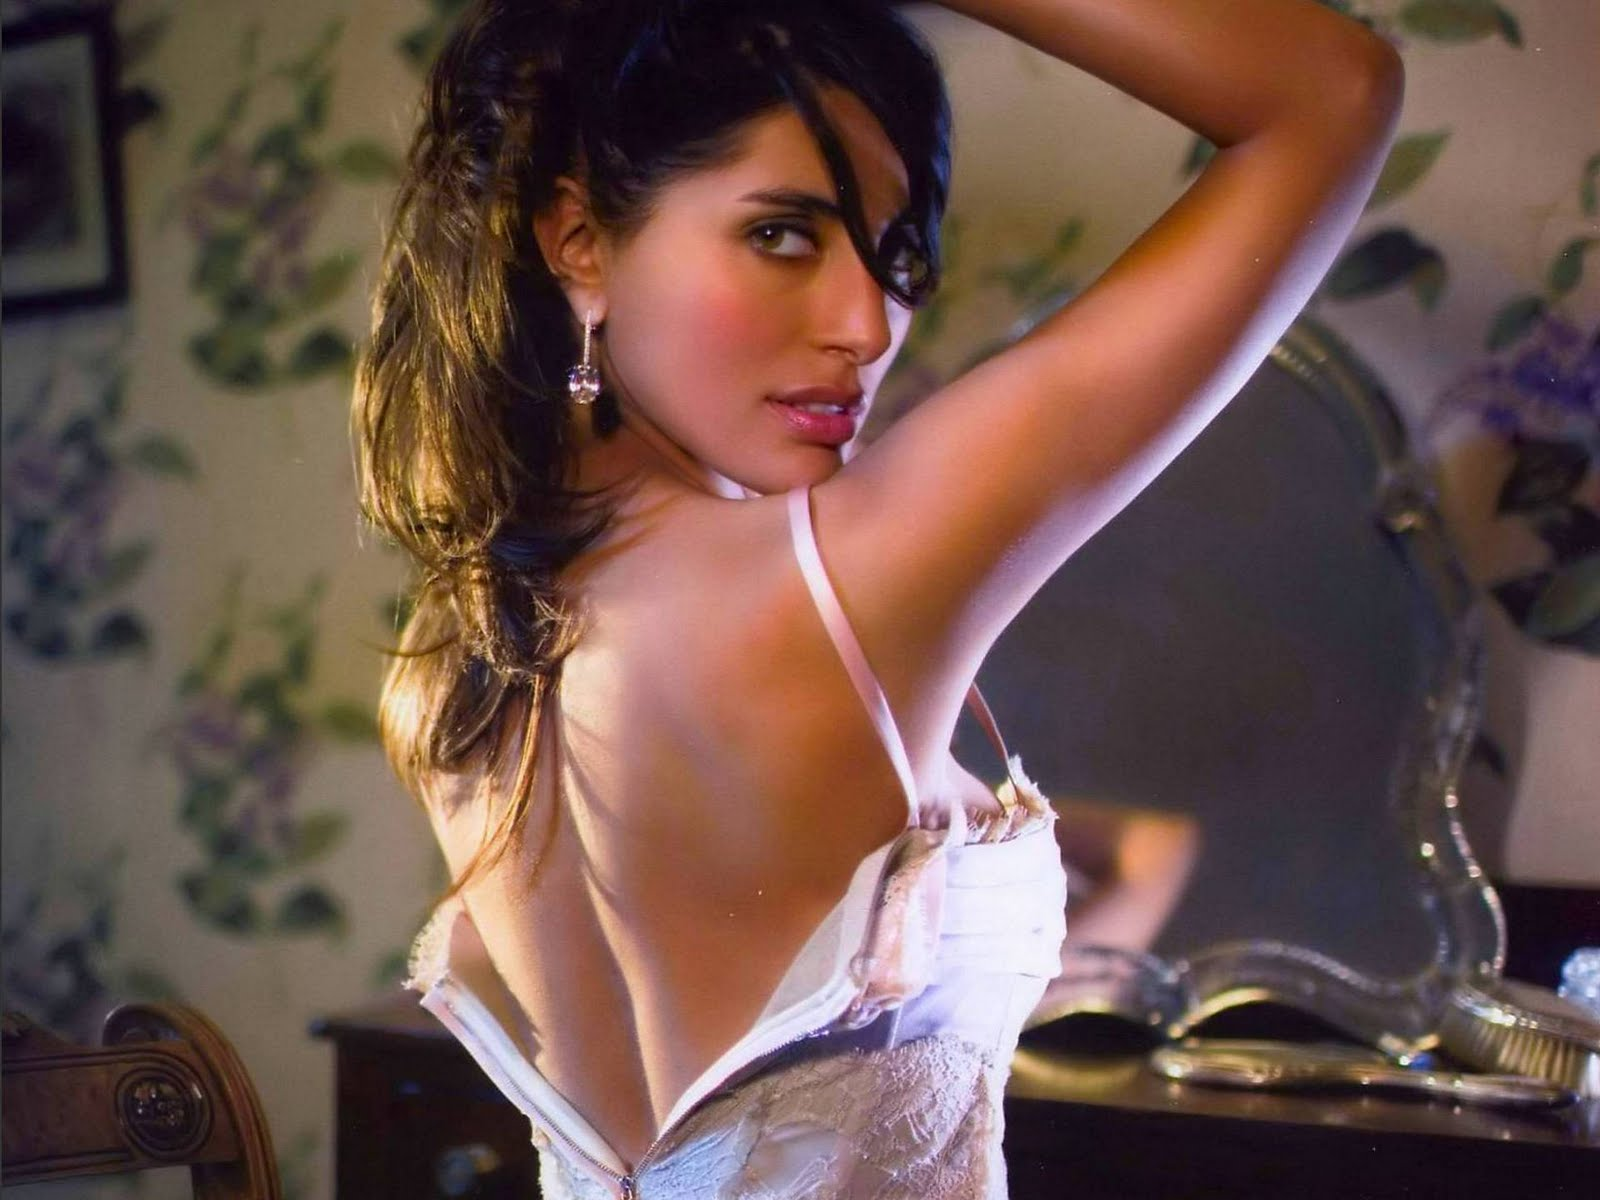 Caterina Murino Hot Pictures  Photo Gallery  amp  WallpapersCaterina Murino Hot Casino Royale